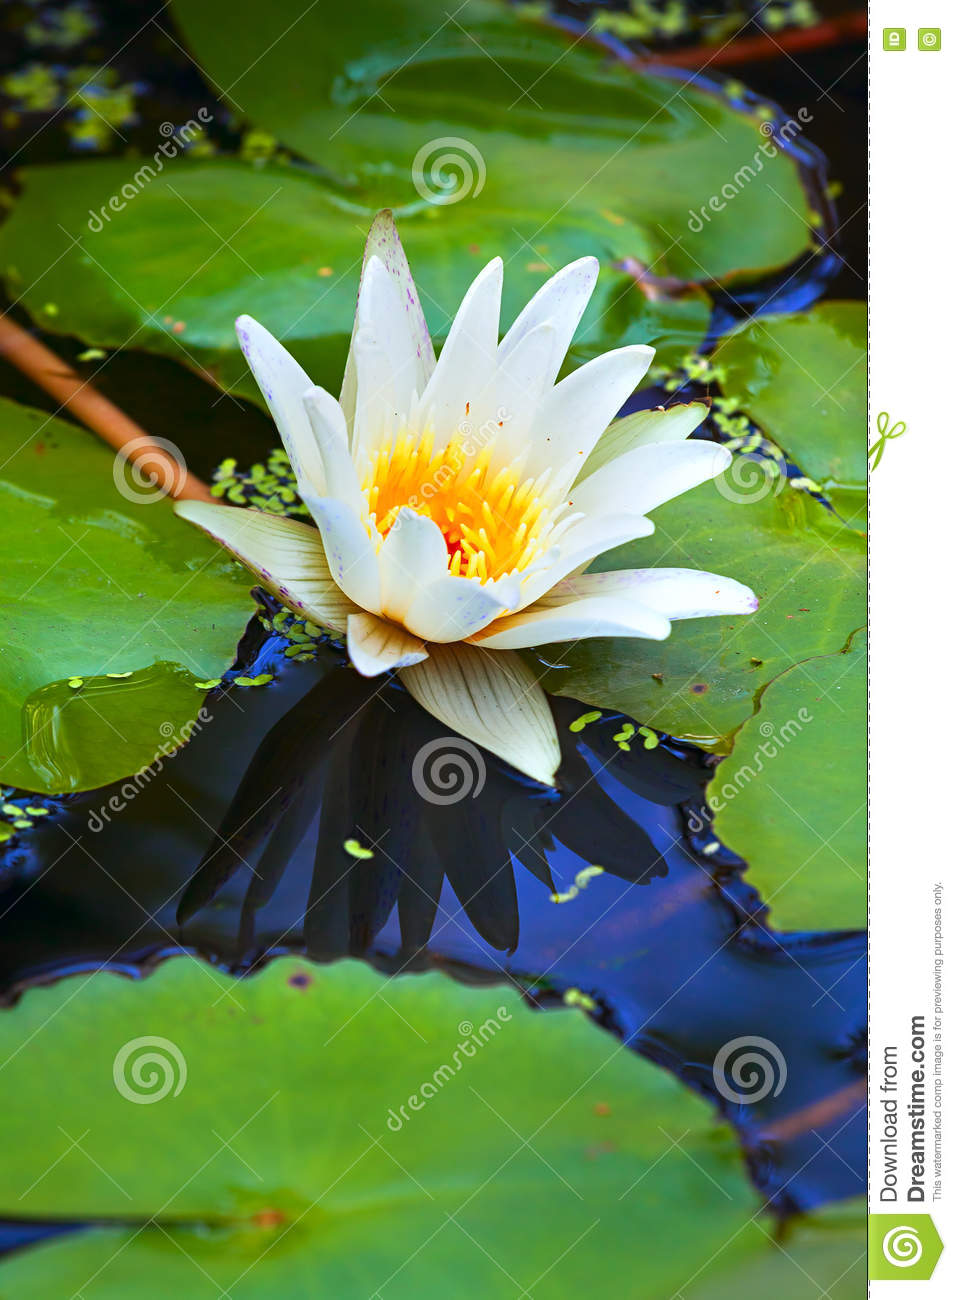 White Lotus Flower From The Lake Stock Photo Image Of Beauty